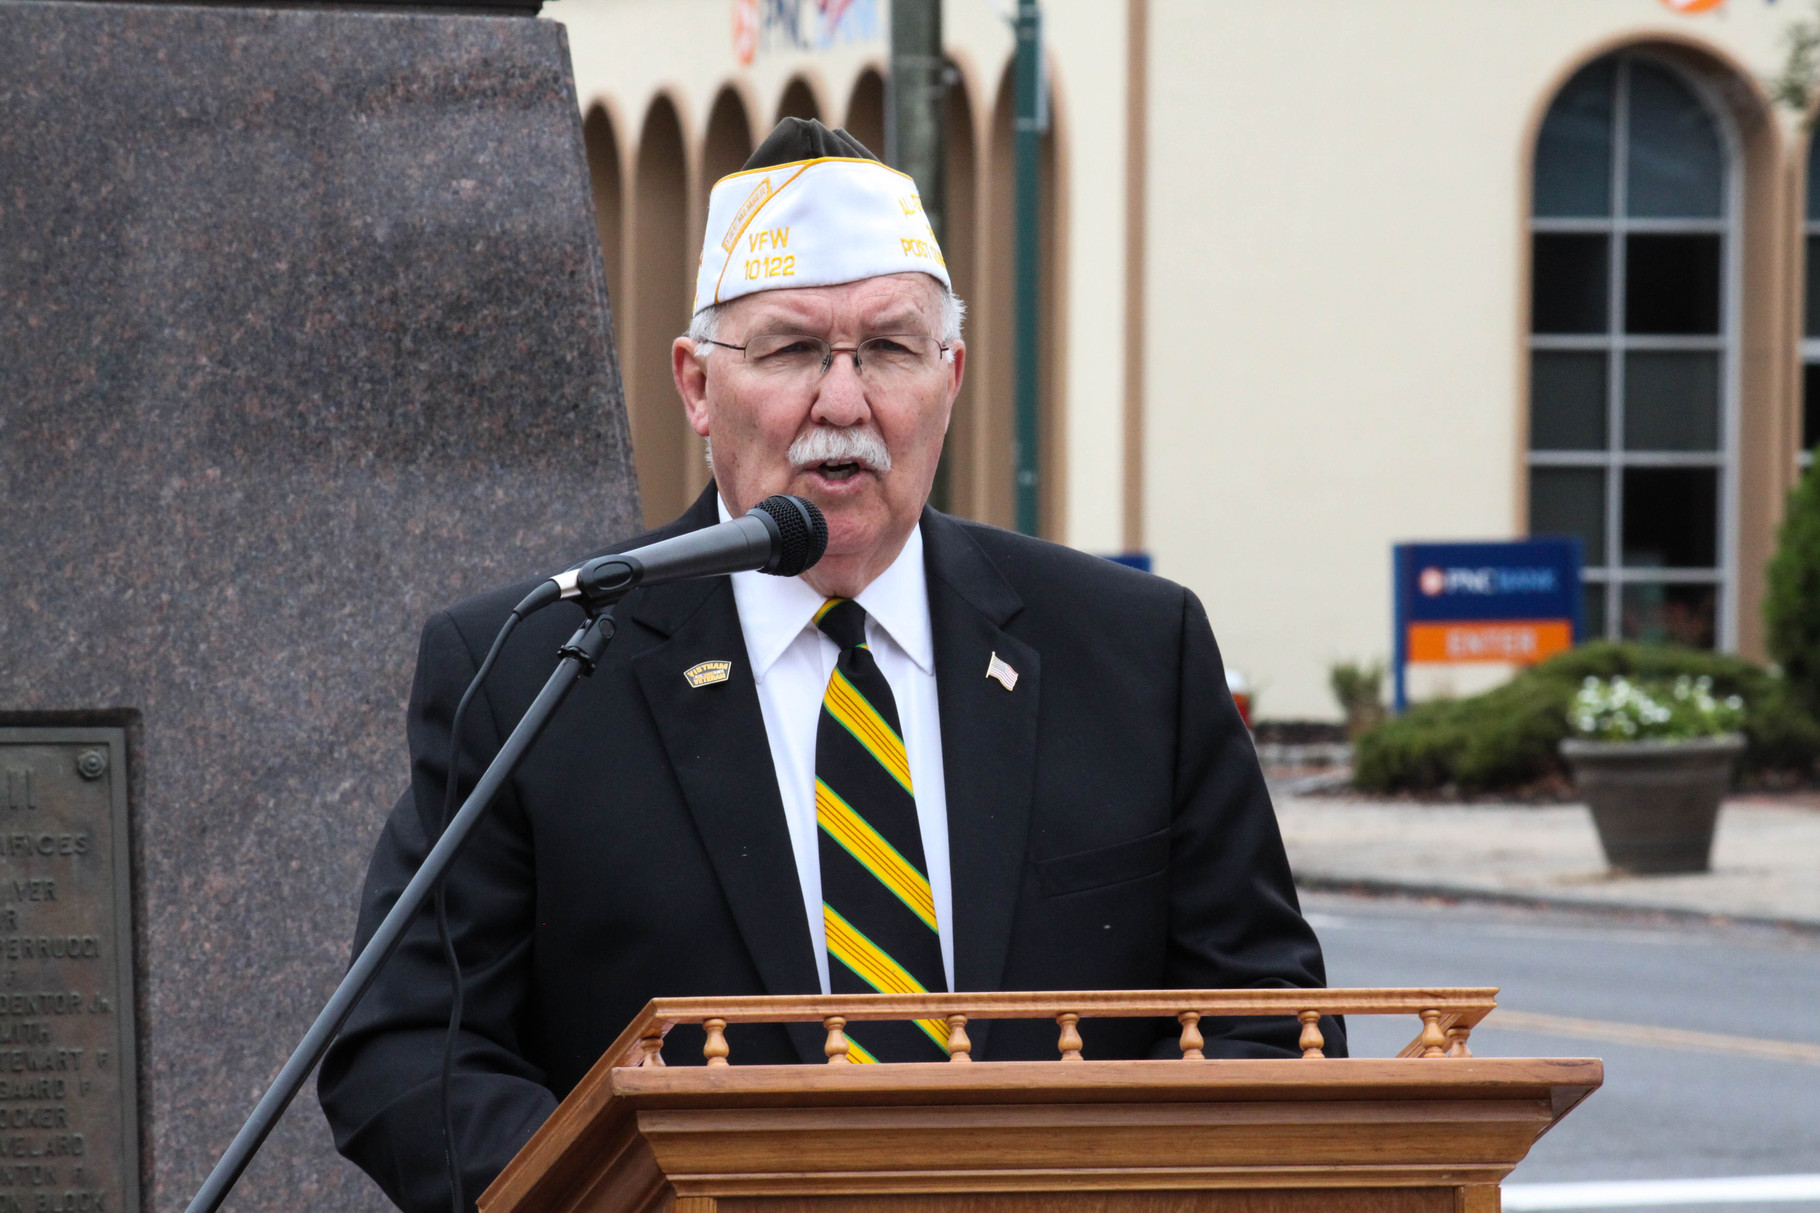 Joe McCourt shares heartfelt words with fellow Veterans